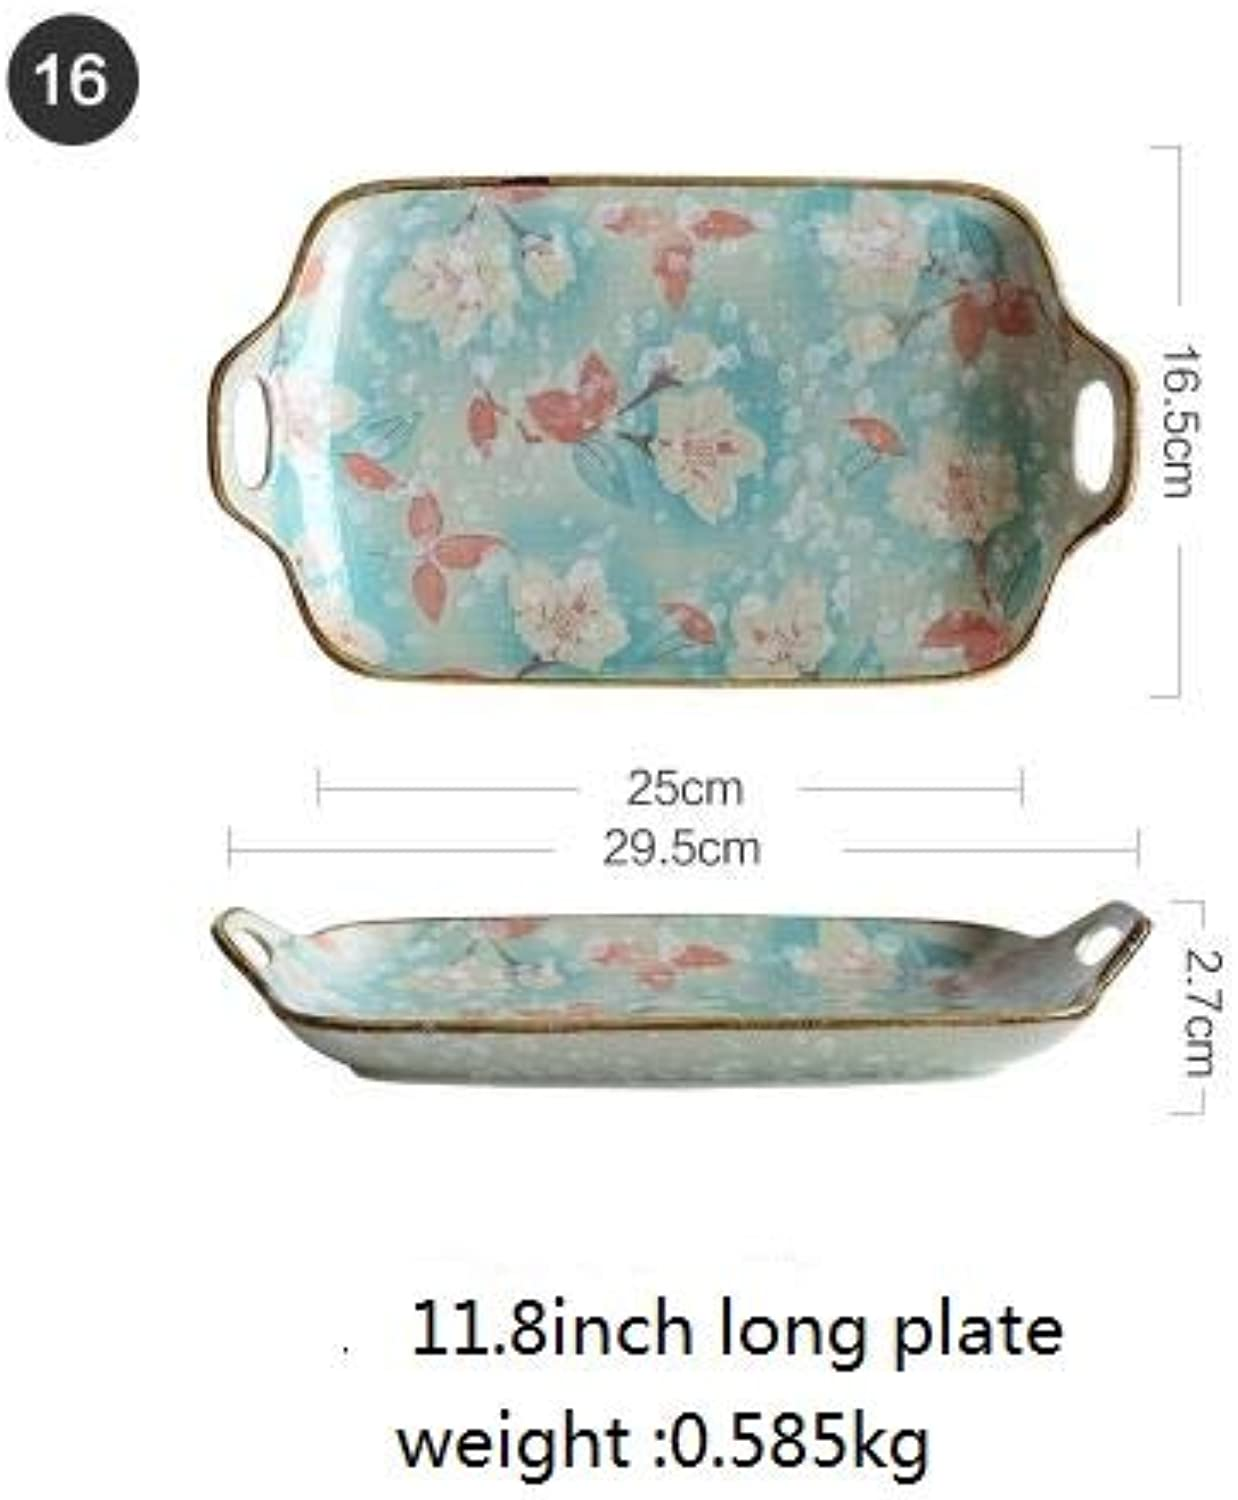 Farmerly Japanese Style Ceramic White Yulan Flower bluee color Small Spoon Soup Bowl Sauce Dish Kitchen Tableware   11.8 inch Long Plate